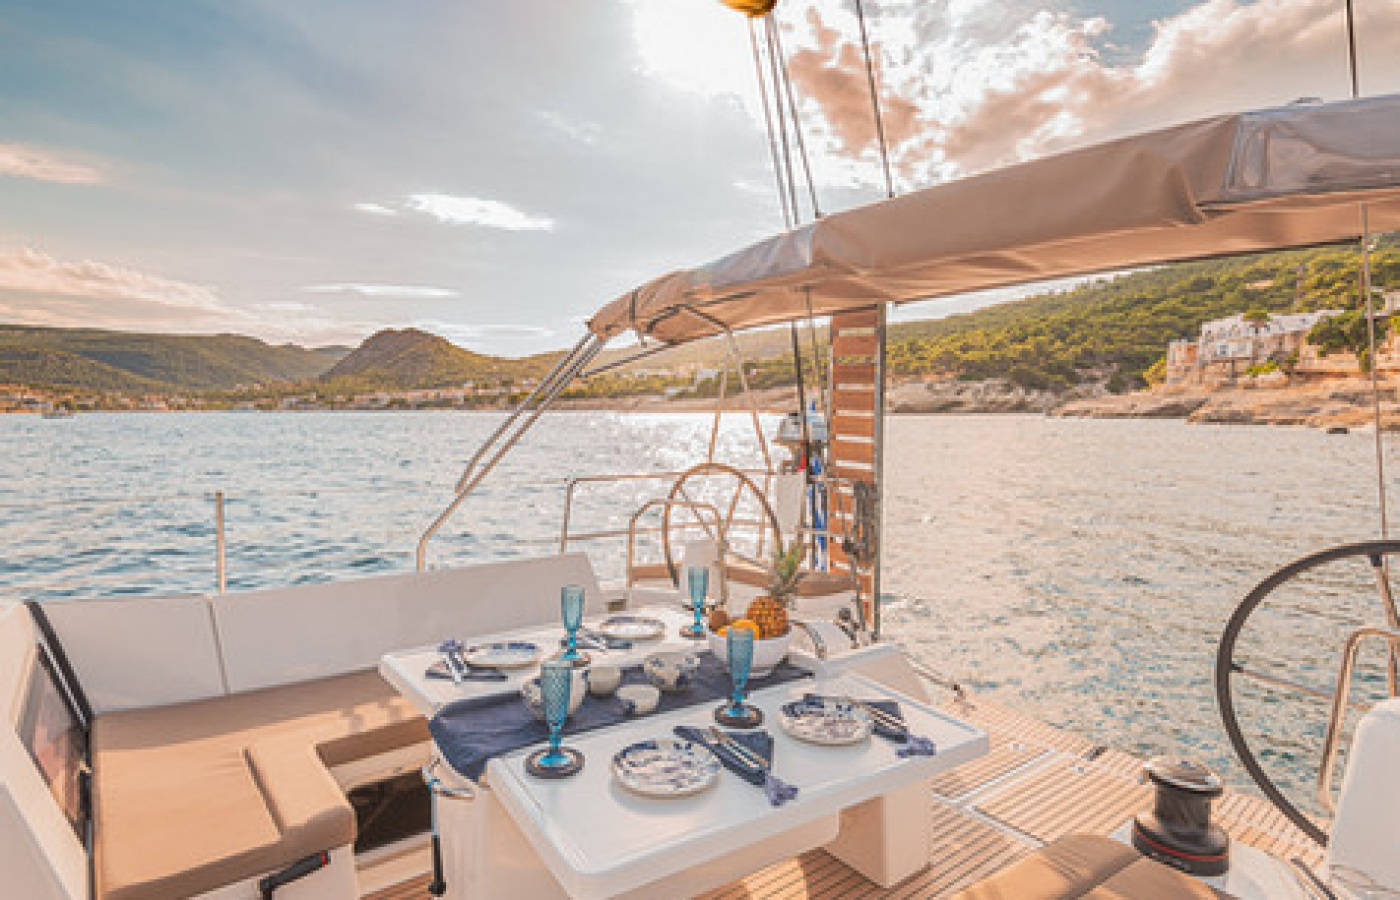 The dining table at the stern of the boat